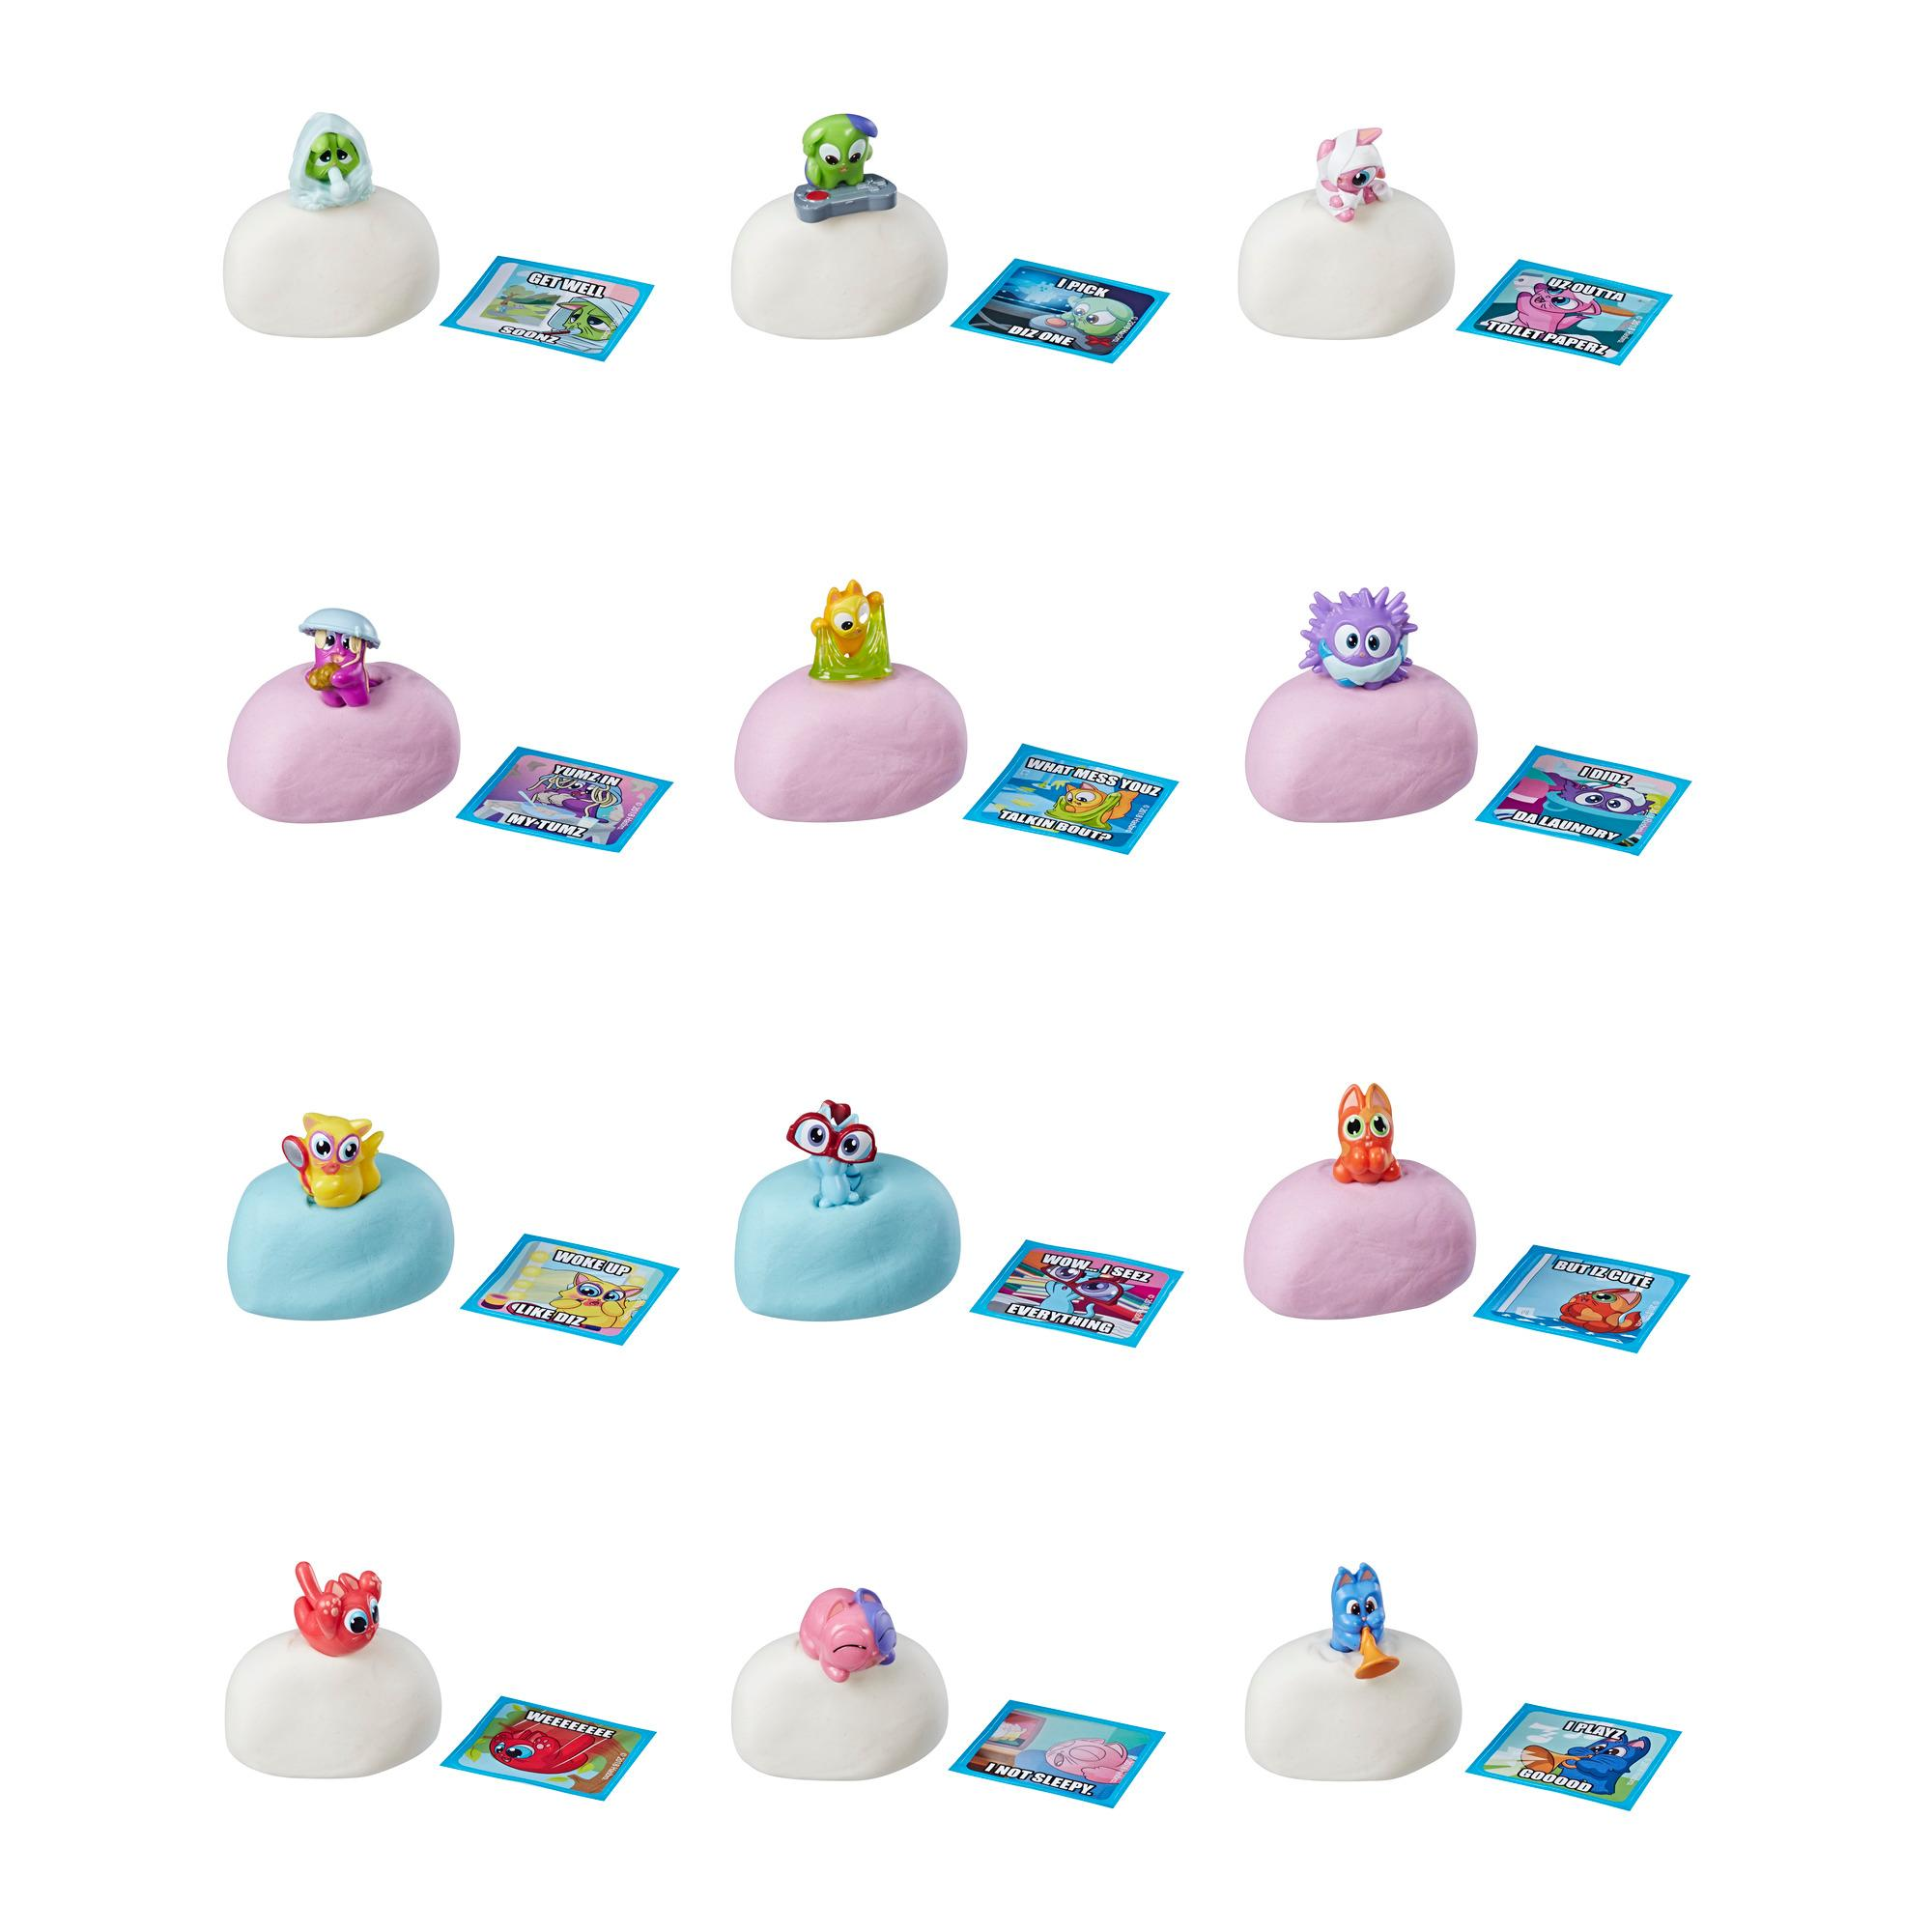 Itty Bitty Lost Kitties Kitty Figure, 36 to collect by early 2019, Ages 5 and Up